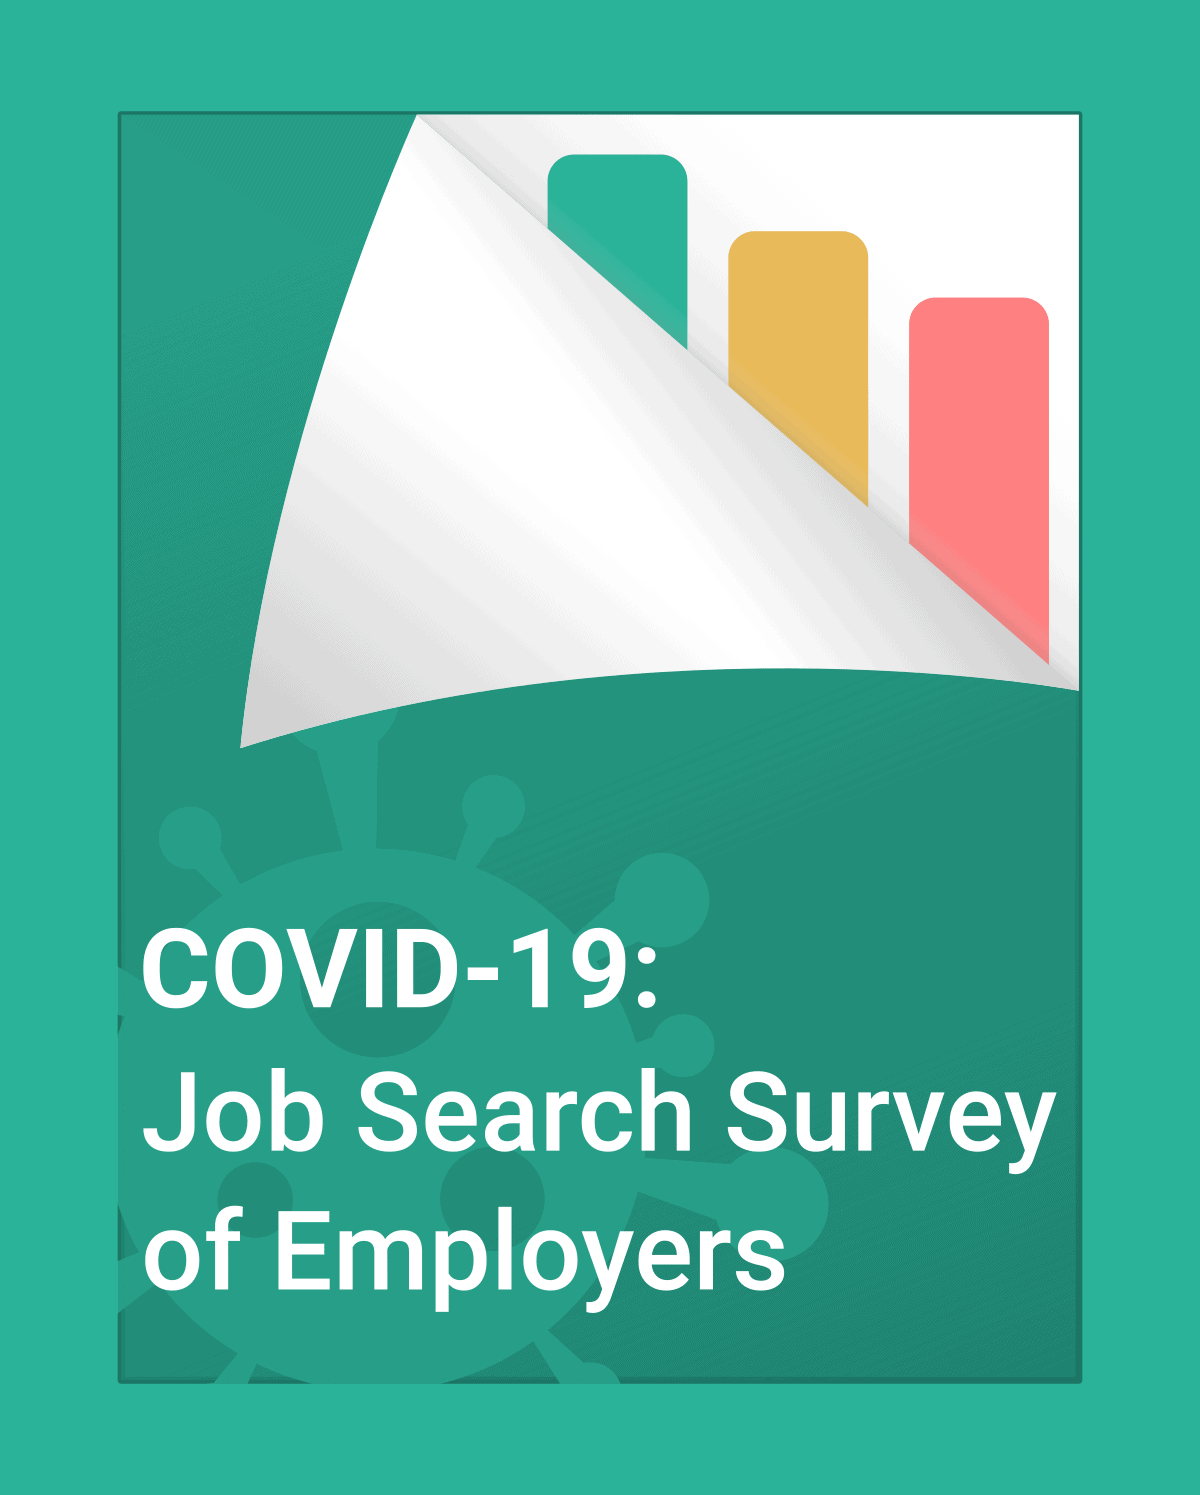 Covid19 job search survey of employers booklet